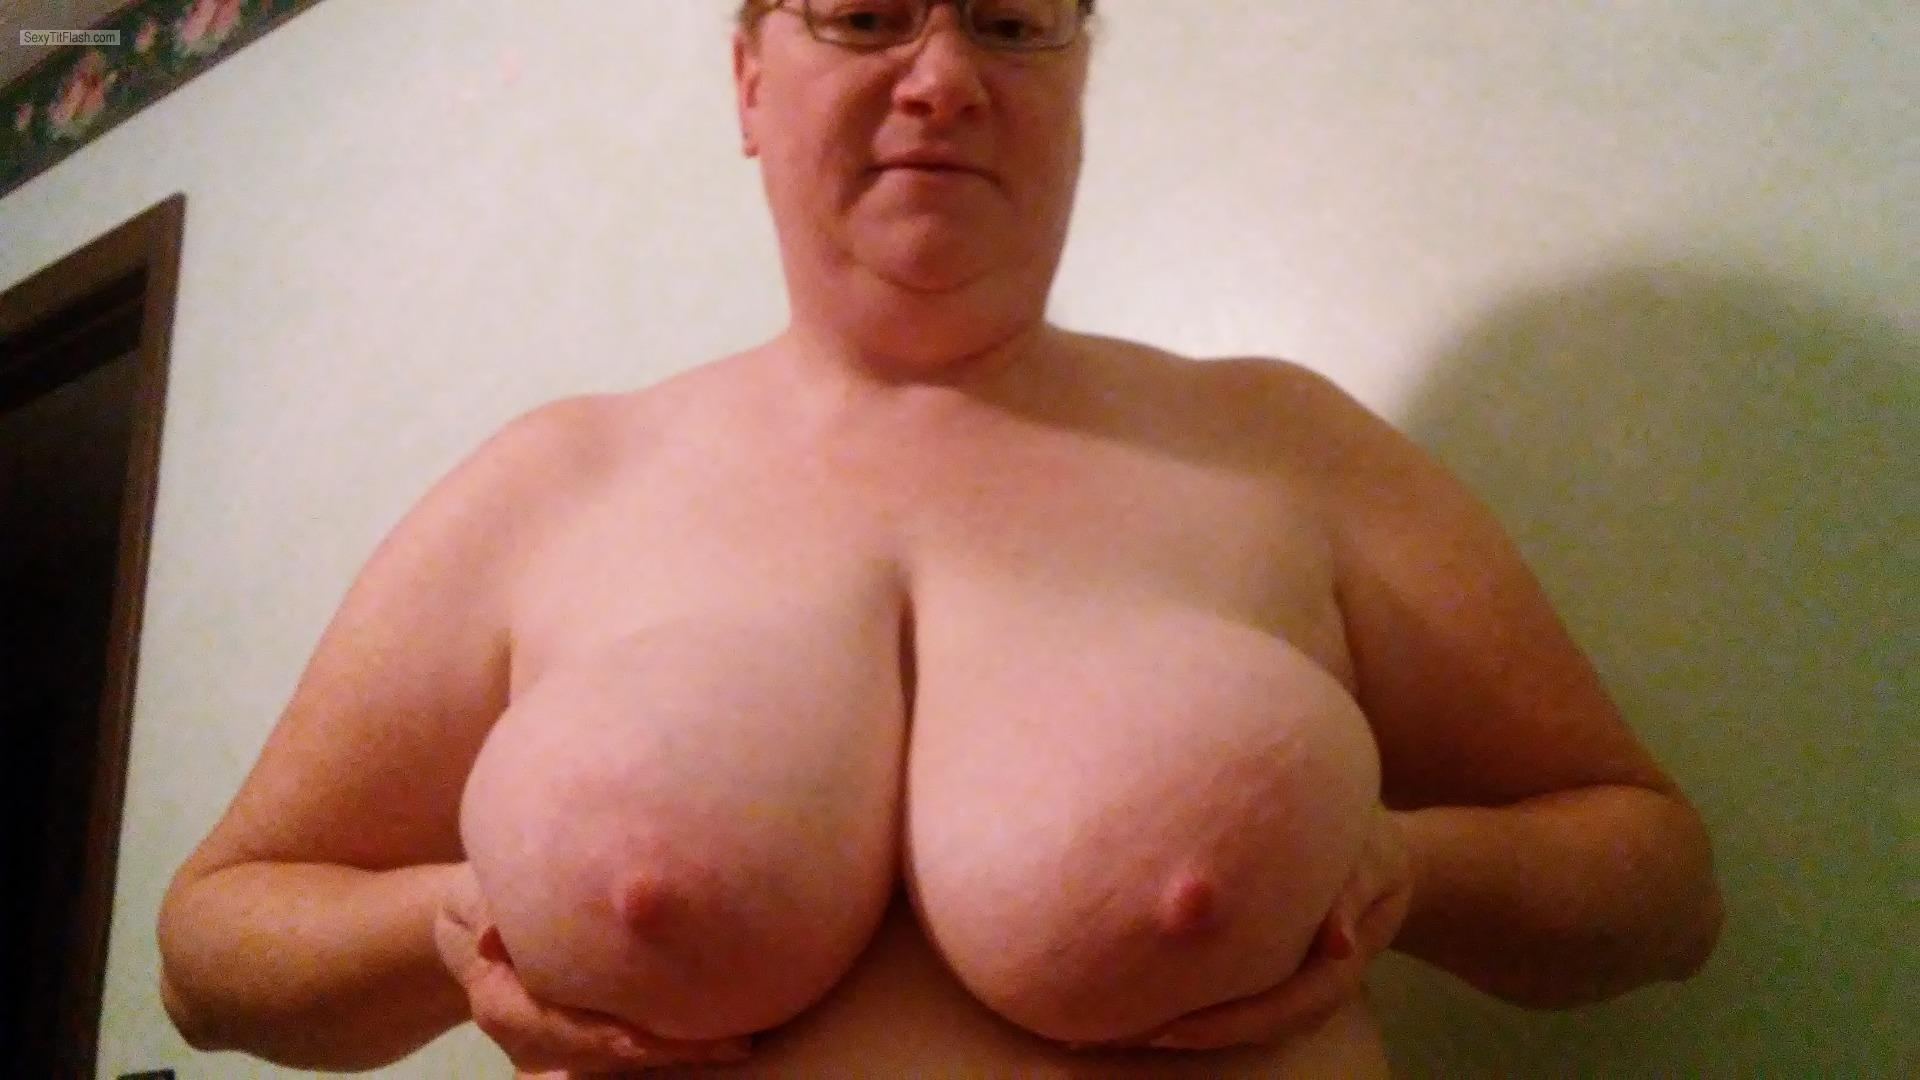 Tit Flash: Wife's Very Big Tits - Topless Tina from United States